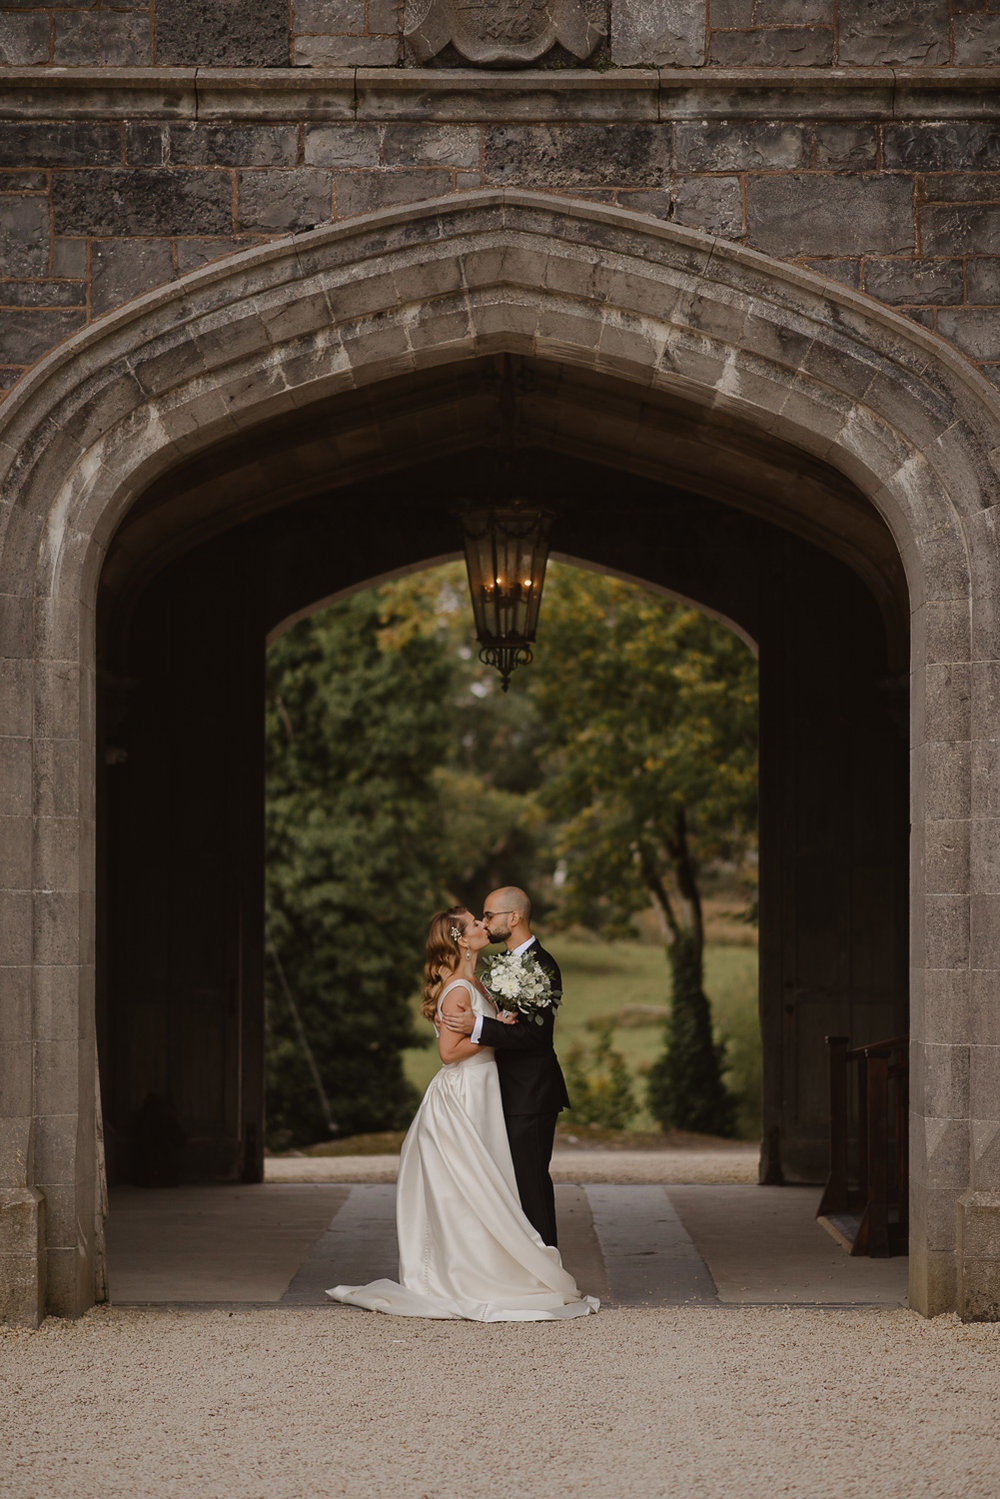 Markree castle wedding photographs -42.jpg